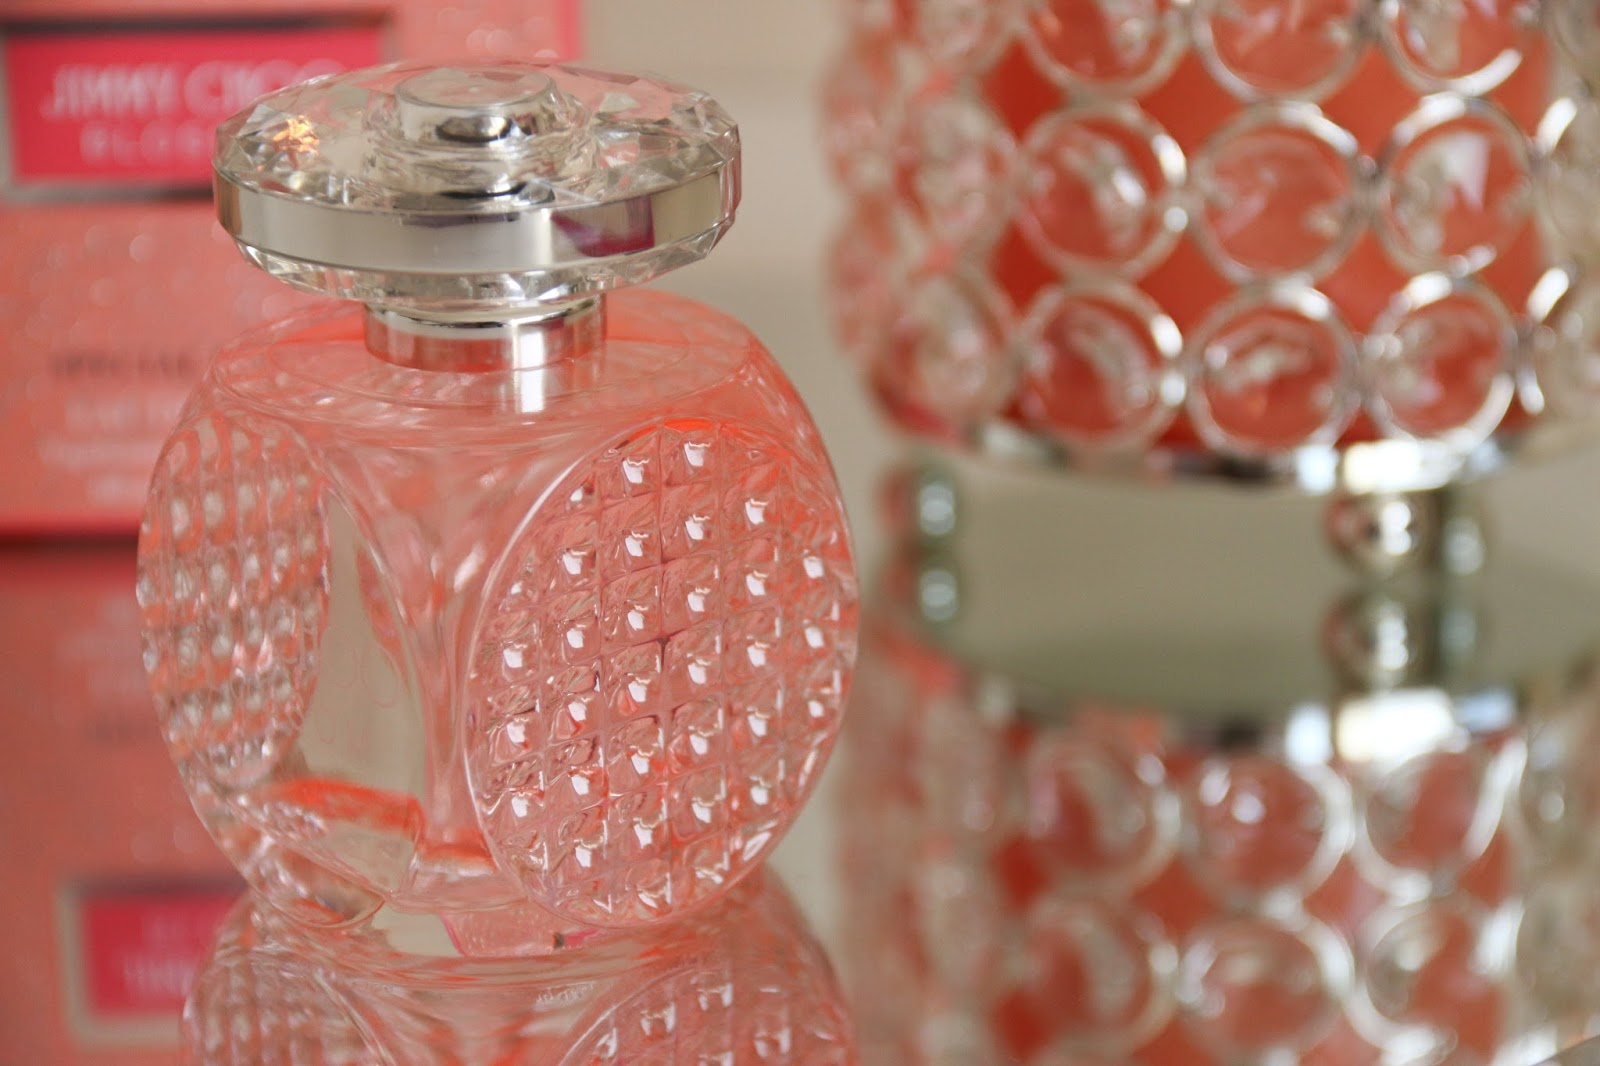 Jimmy Choo Blossom Special Edition EDP For Her Fragrance Review WhatLauraLoves